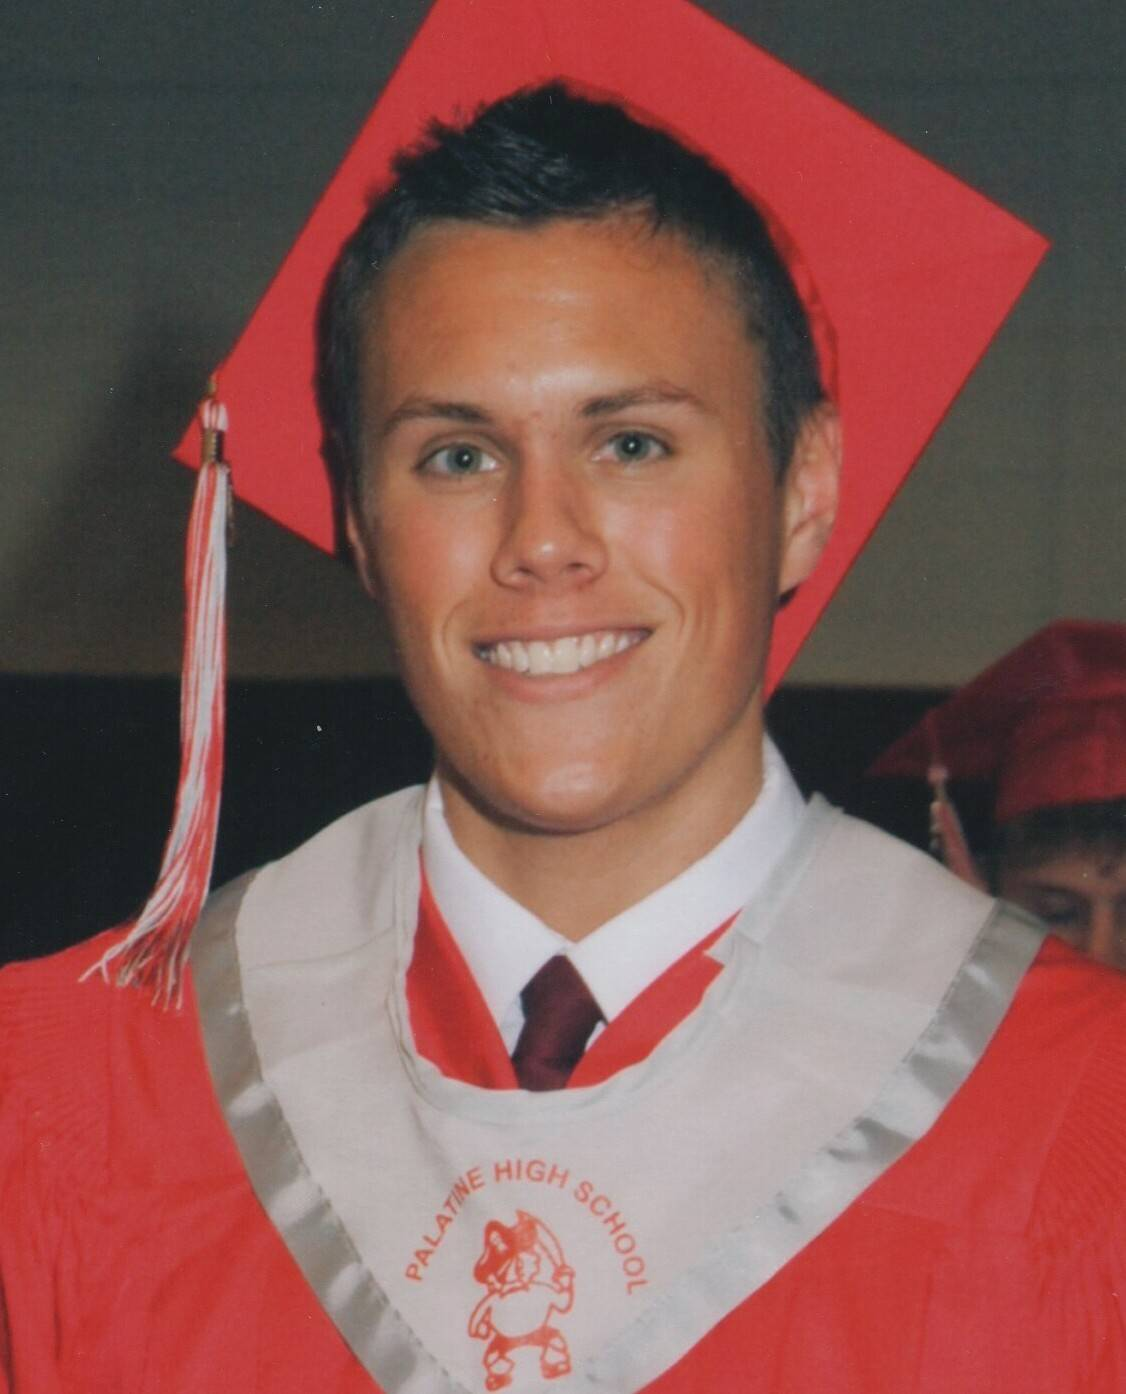 David Bogenberger, seen here at his Palatine High School graduation in June 2012, died later that year after a fraternity hazing at Northern Illinois University.